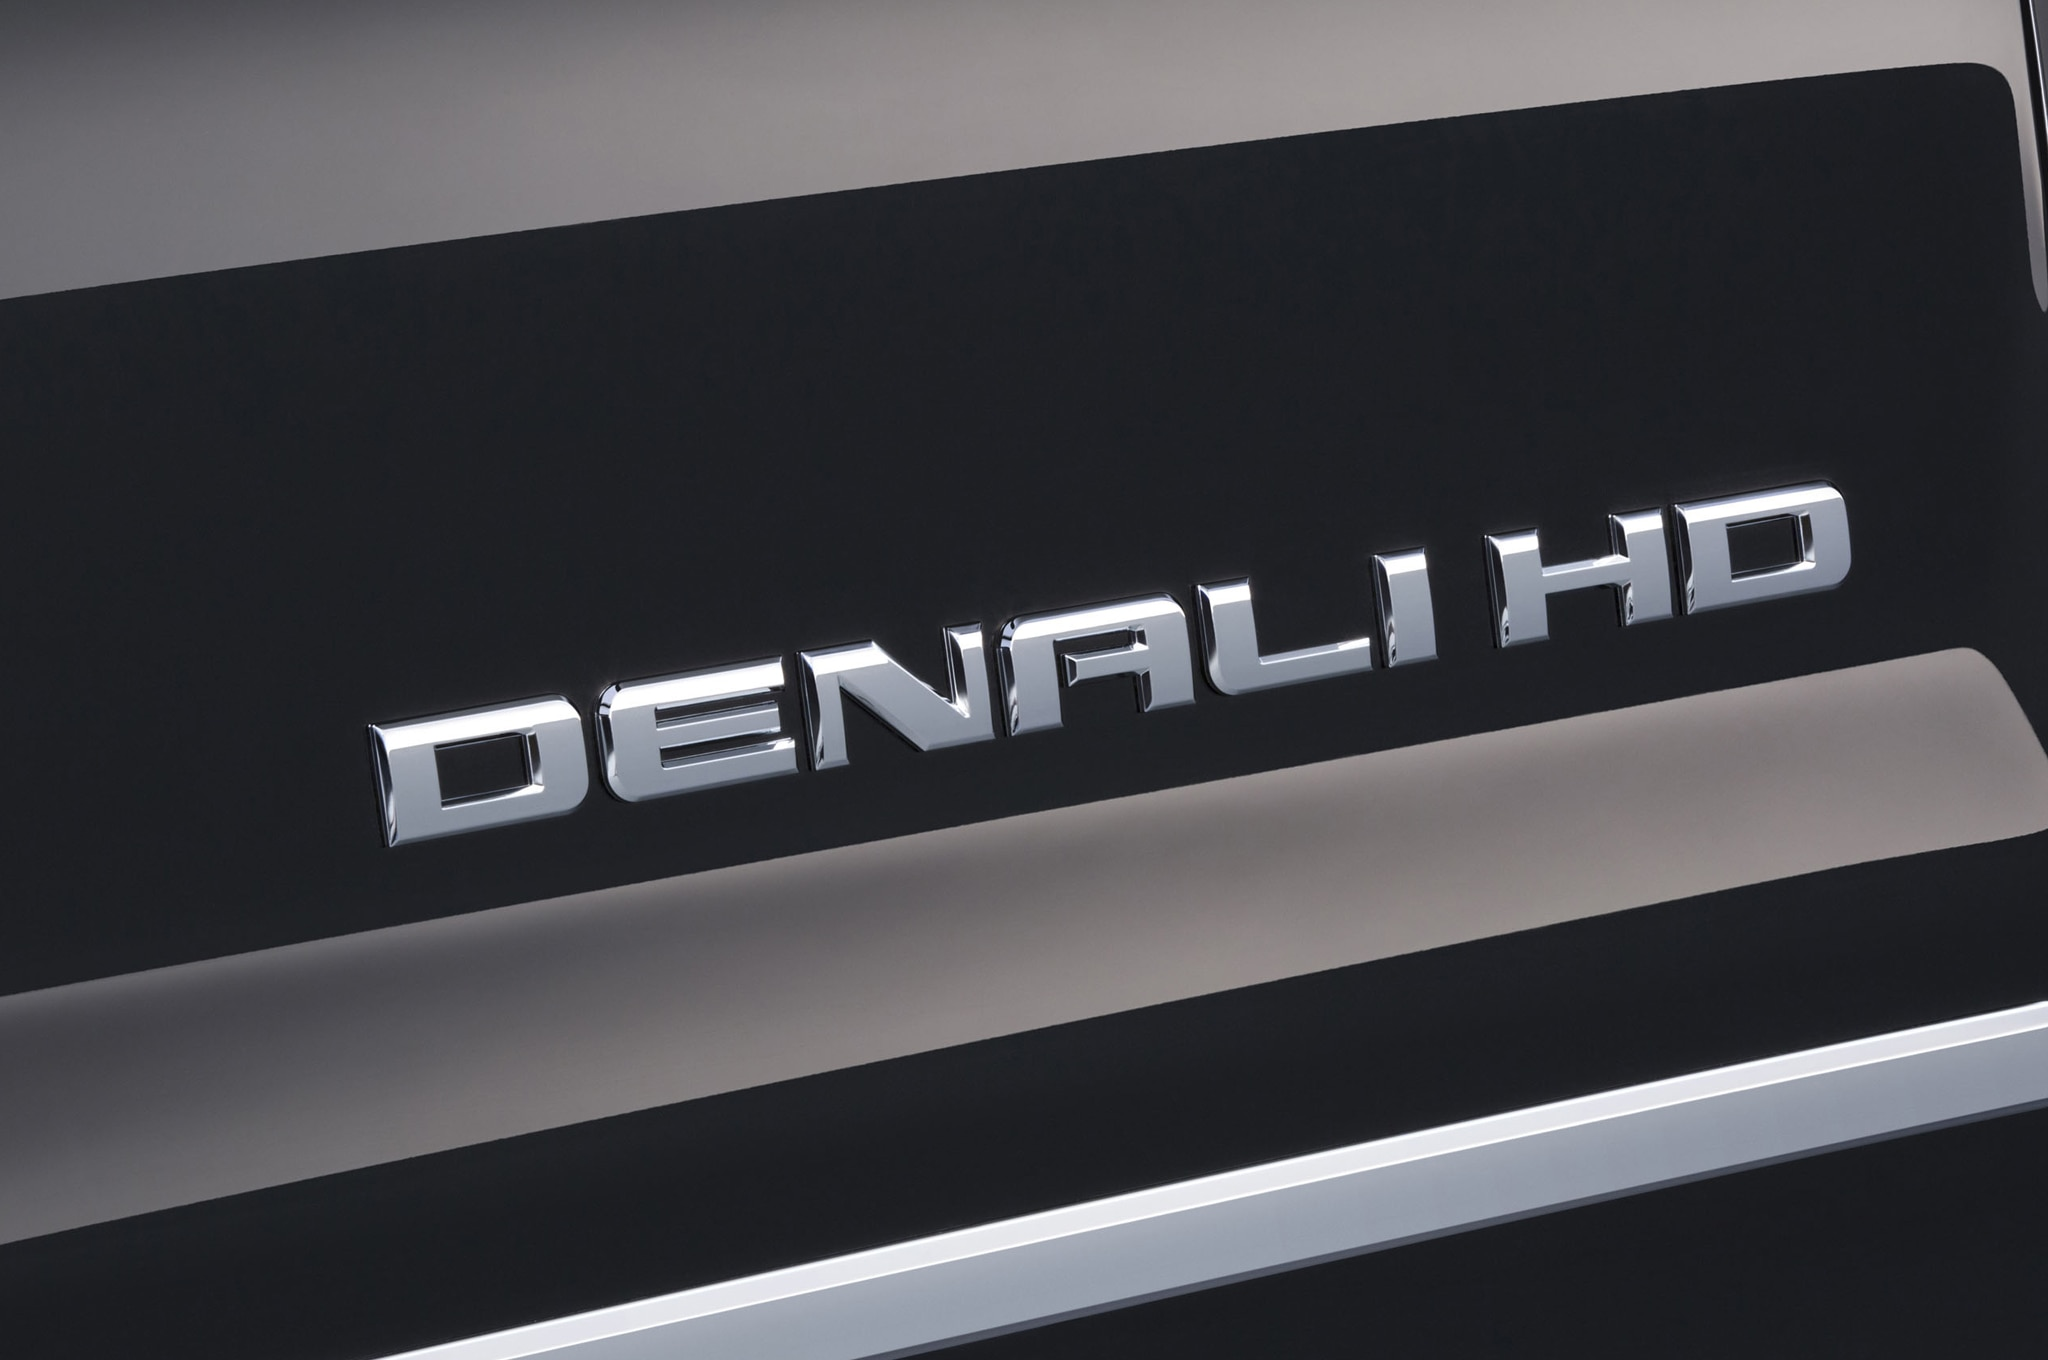 2015 GMC Sierra Denali 2500HD badge